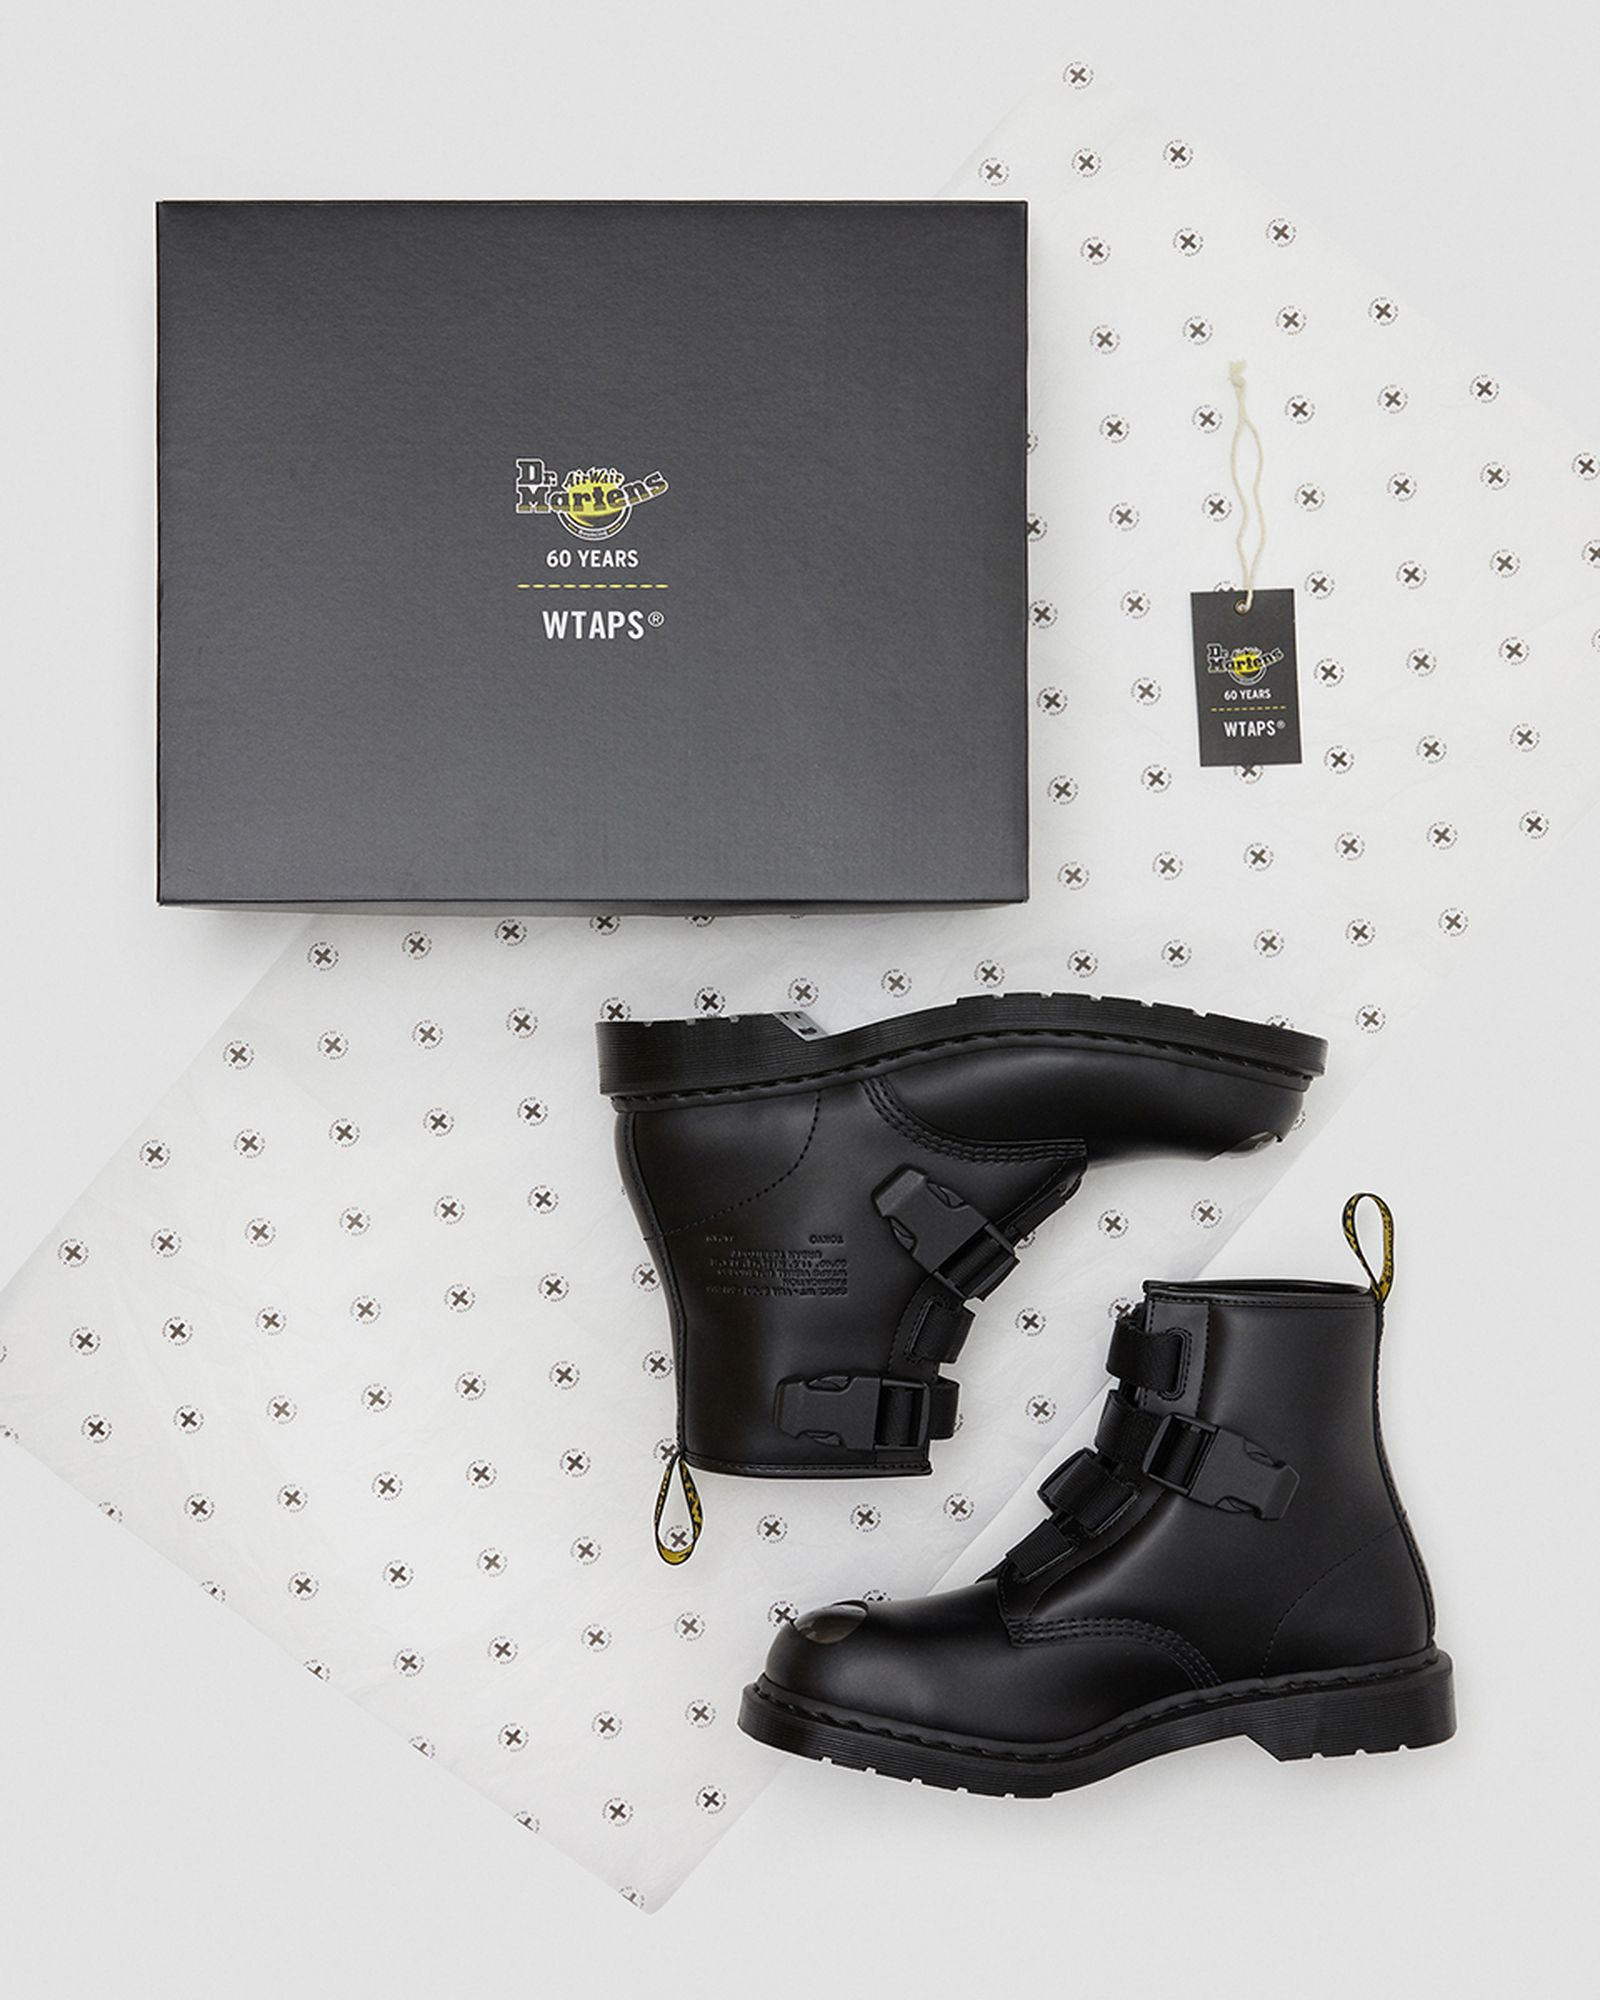 wtaps-dr-martens-1460-remastered-release-date-price-1-01